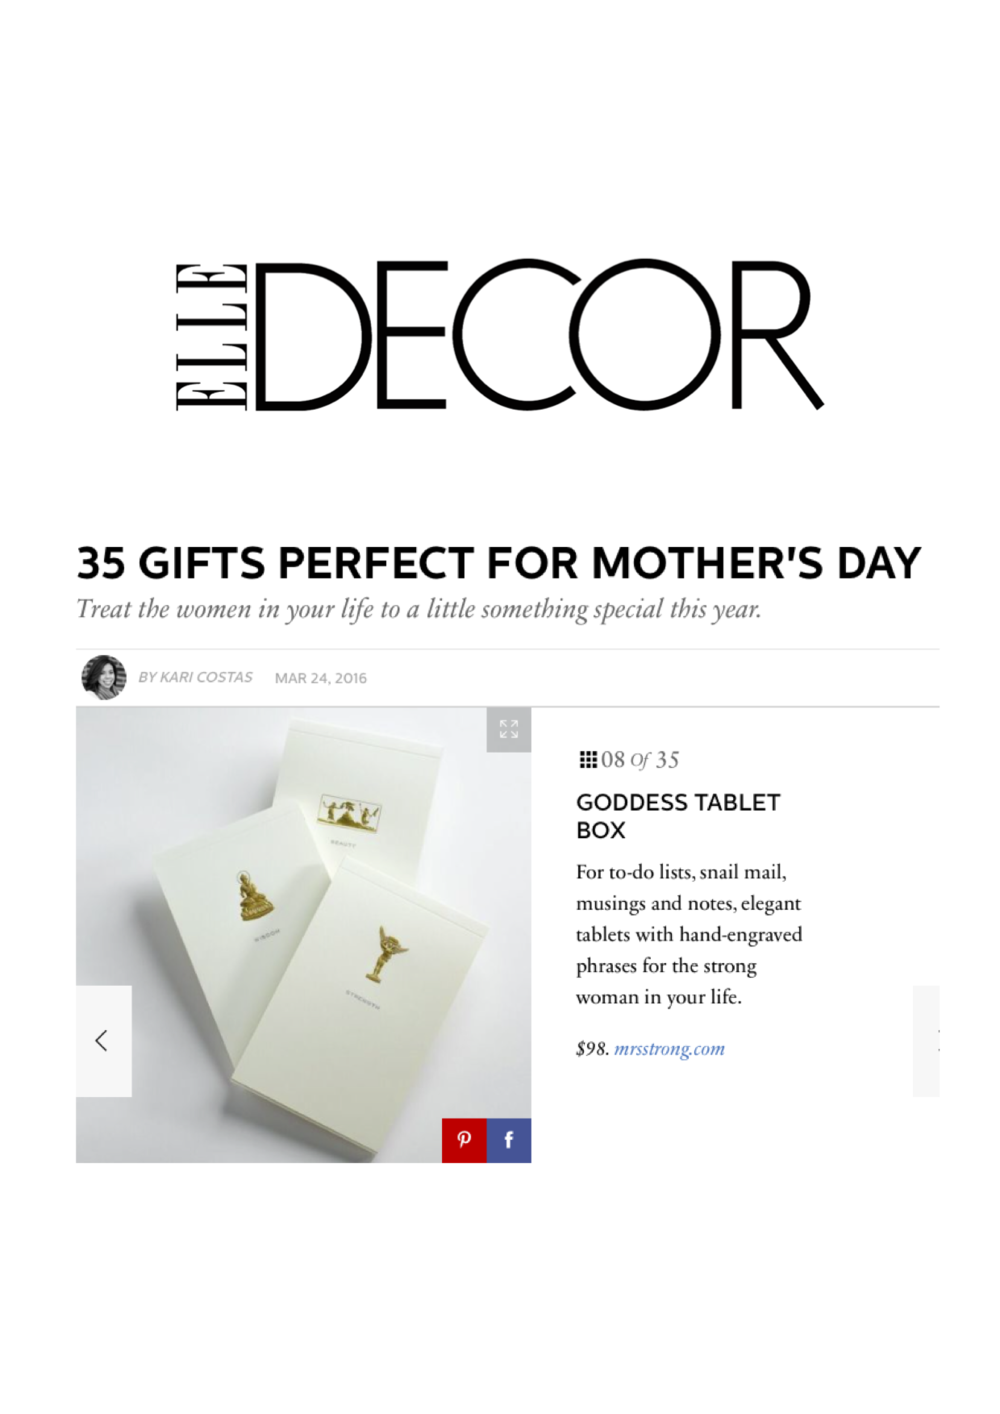 mjls_on_elledecor_03.24.16.png